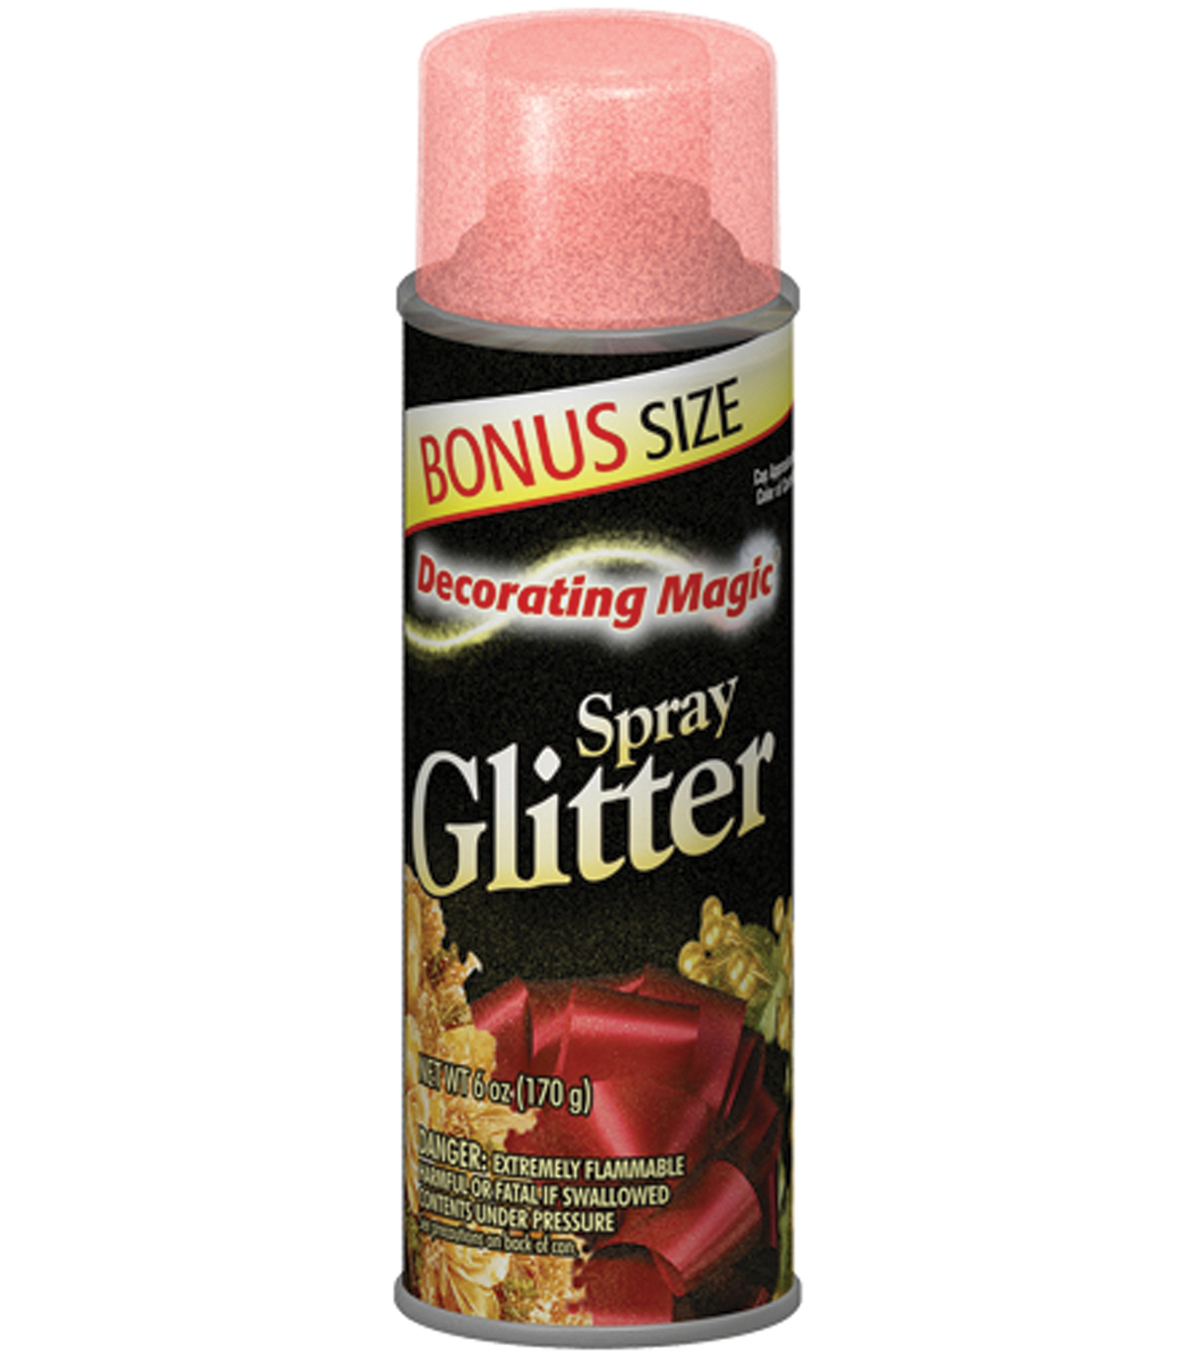 Decorating Magic Spray Glitter 6 Ounces